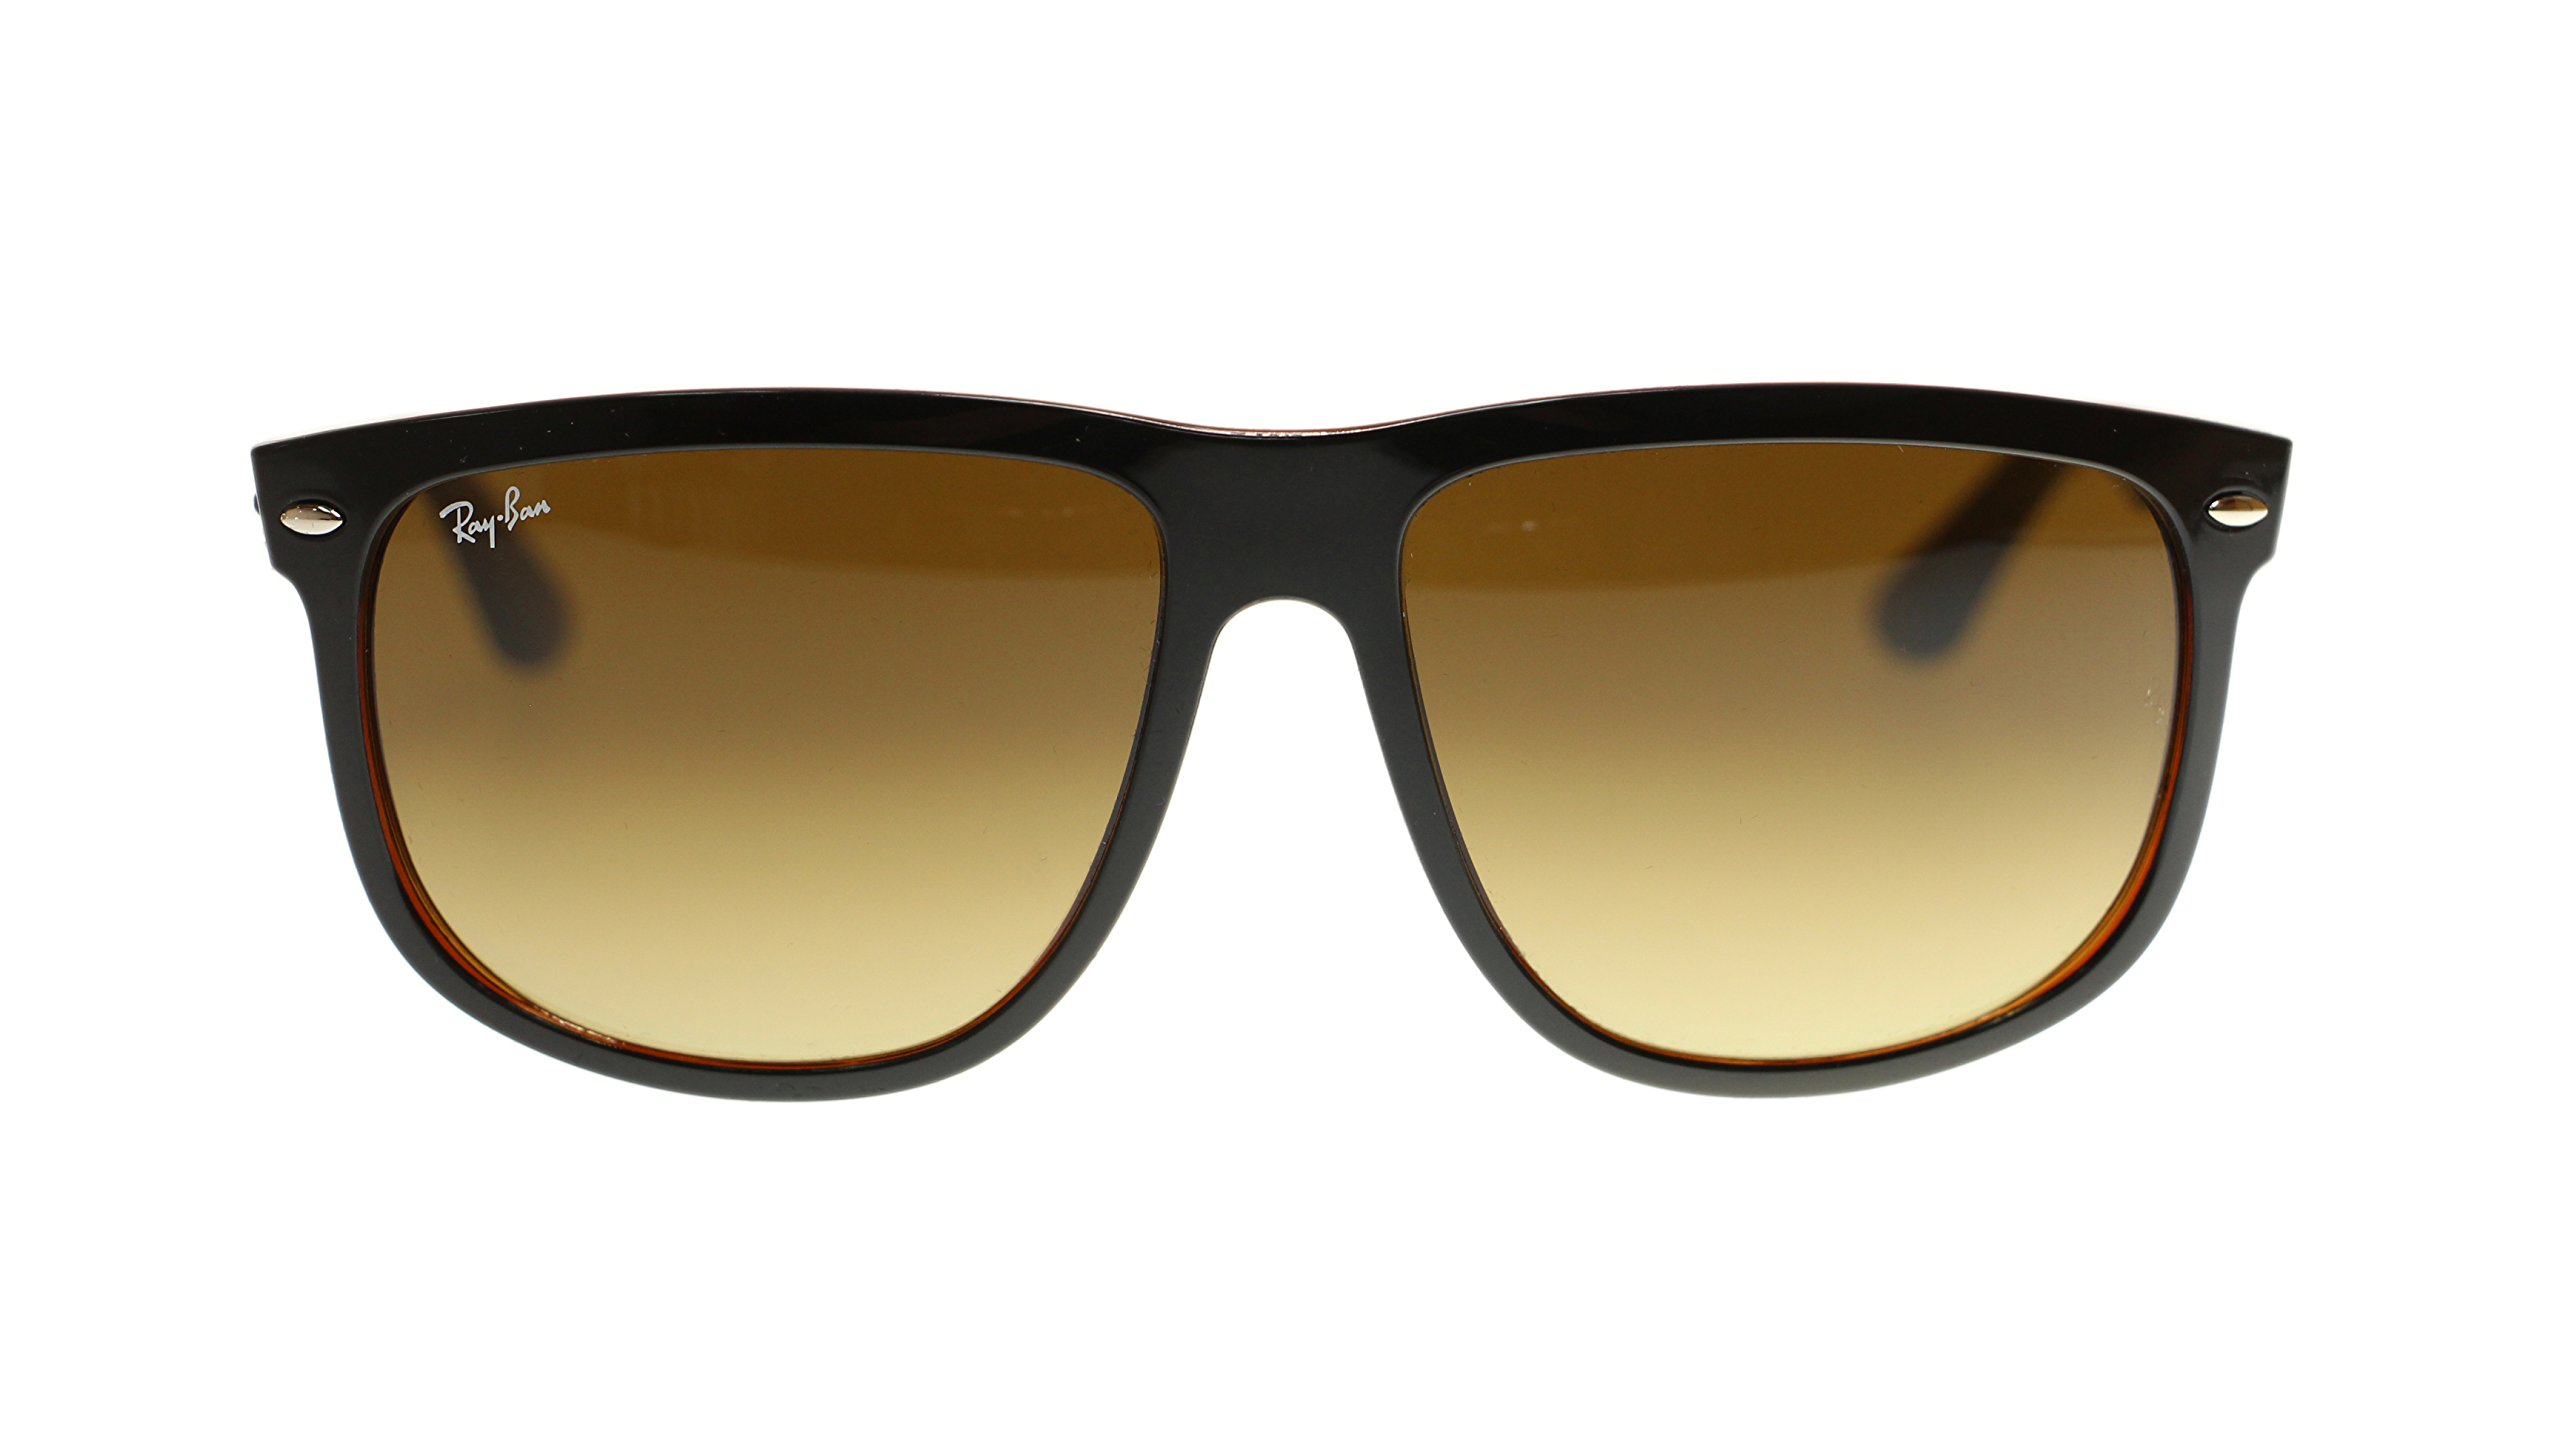 Ray Ban Sunglasses RB4147 609585 Top Black On Brown Square 60mm Authentic